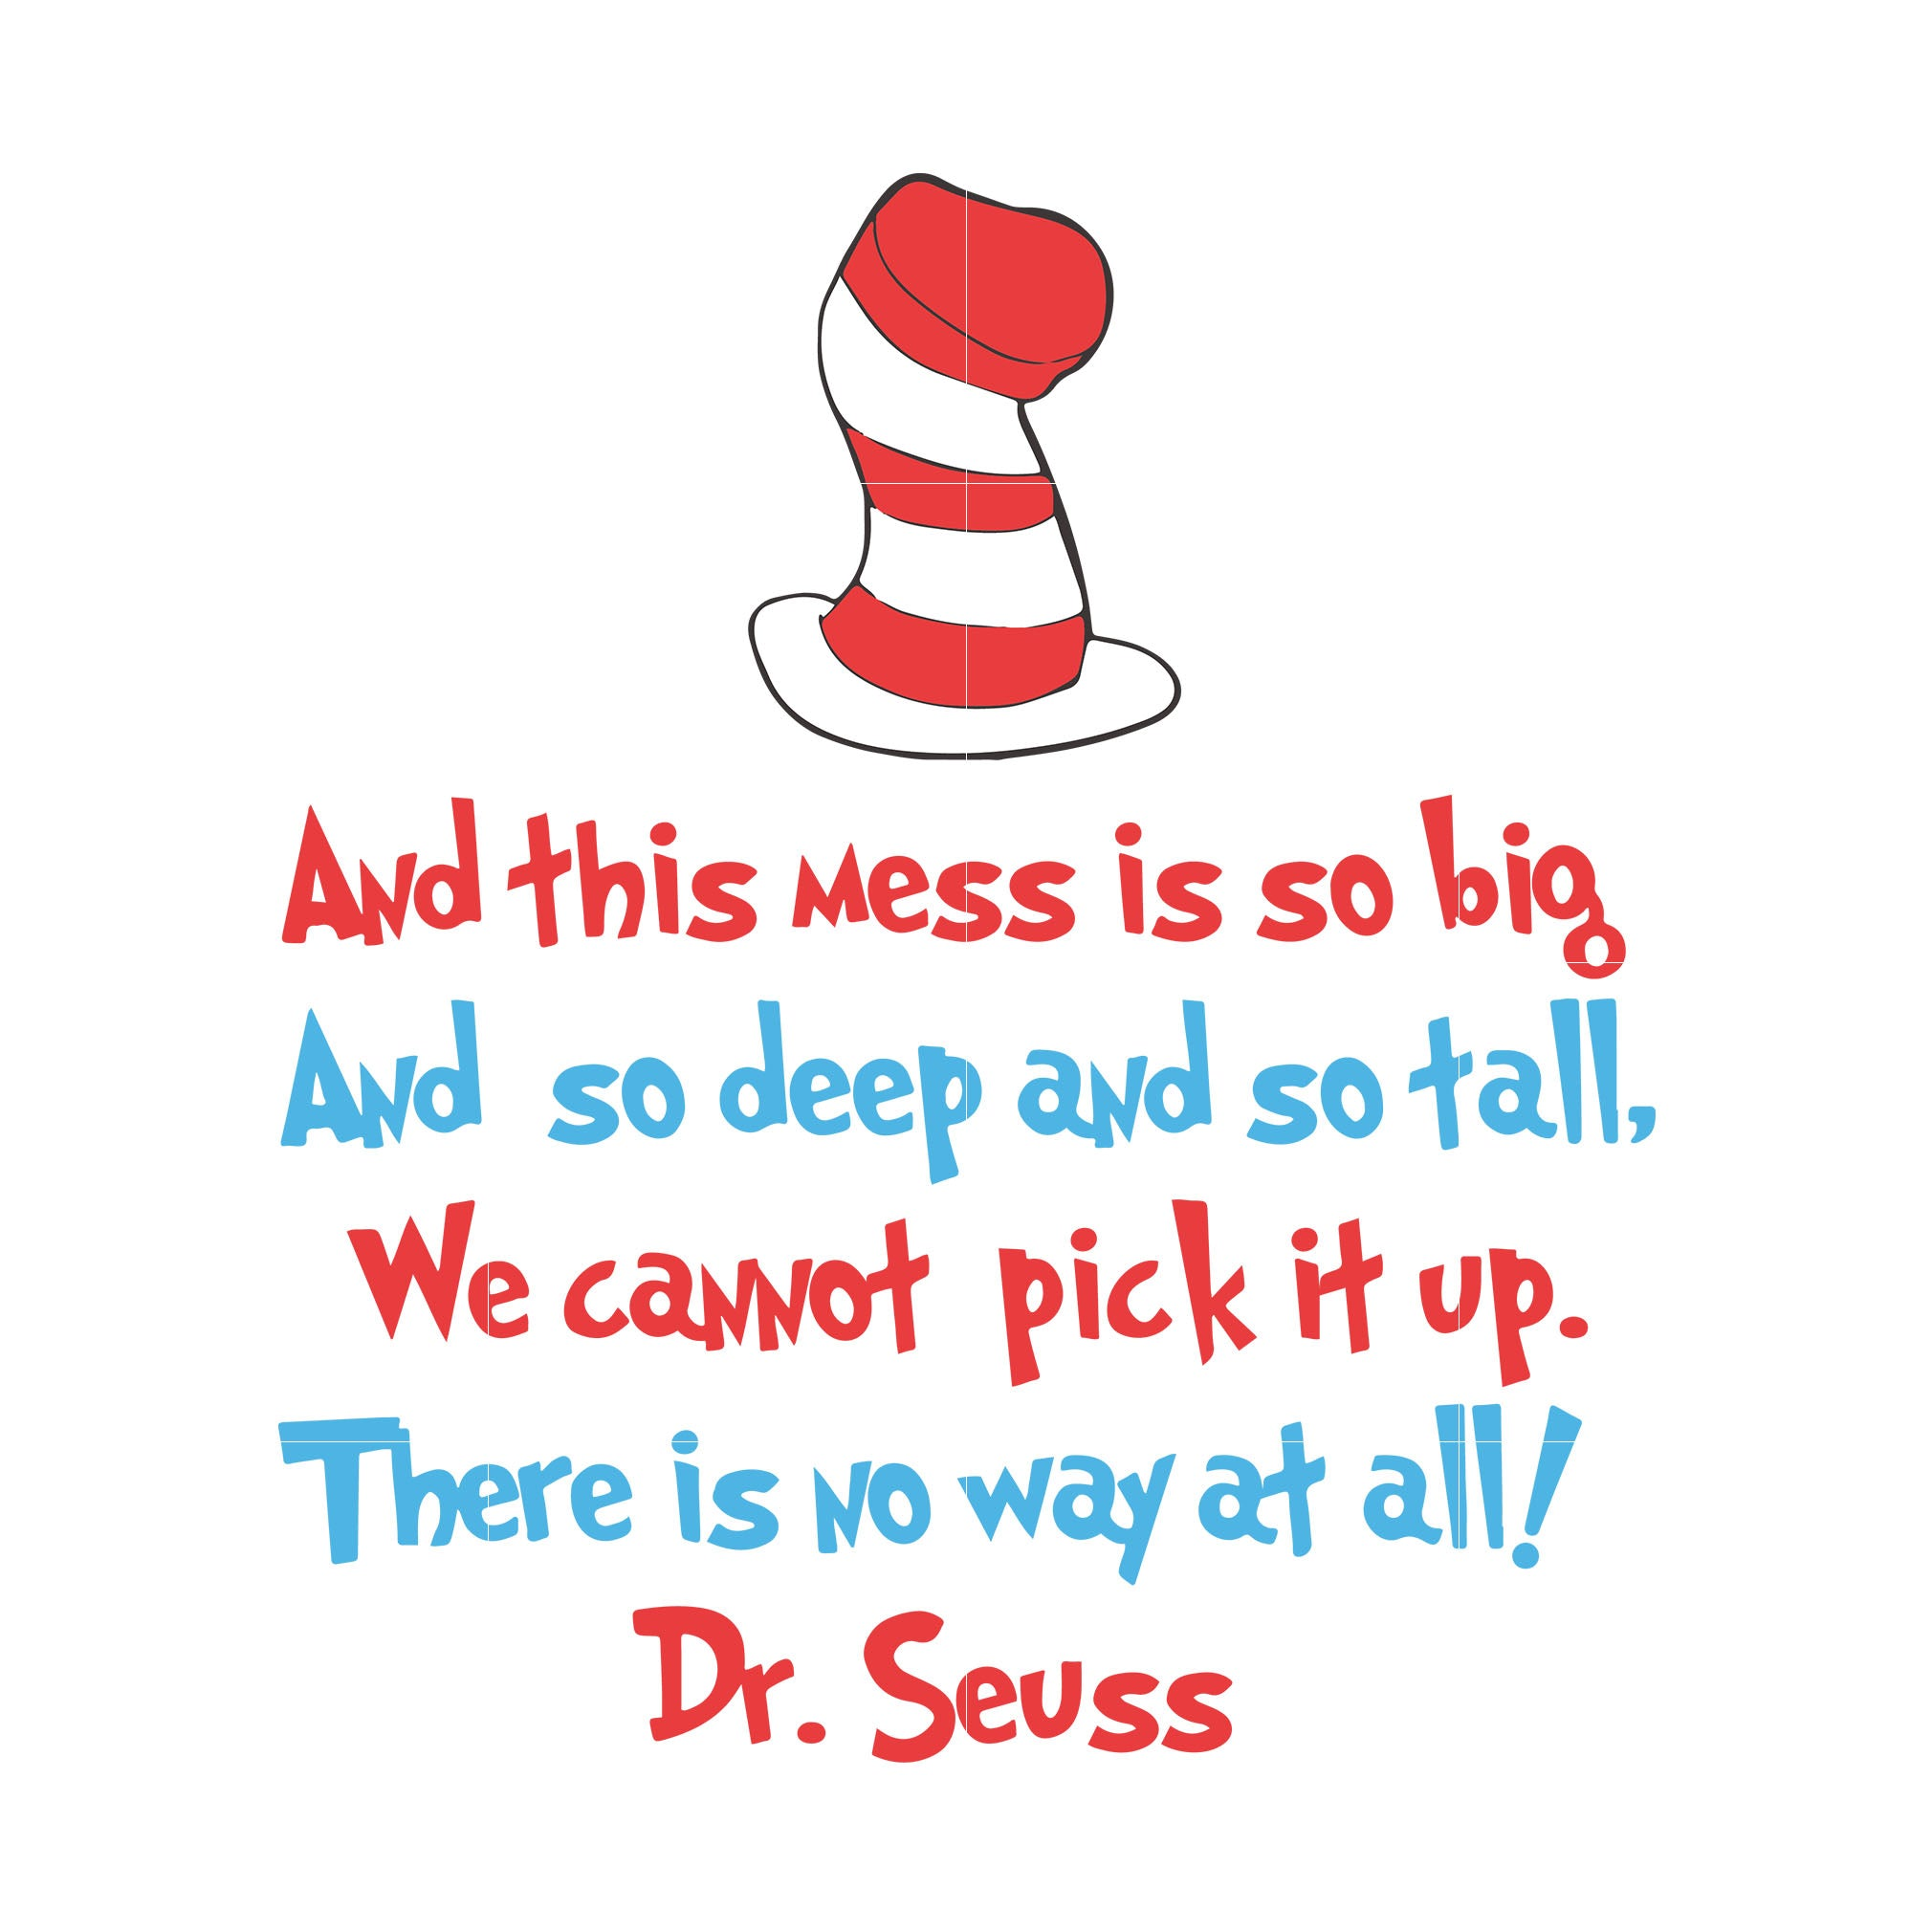 And this mess is so big and so deep and so tall we cant not pick it up there is no way at all, dr seuss svg, dr seuss quotes digital file